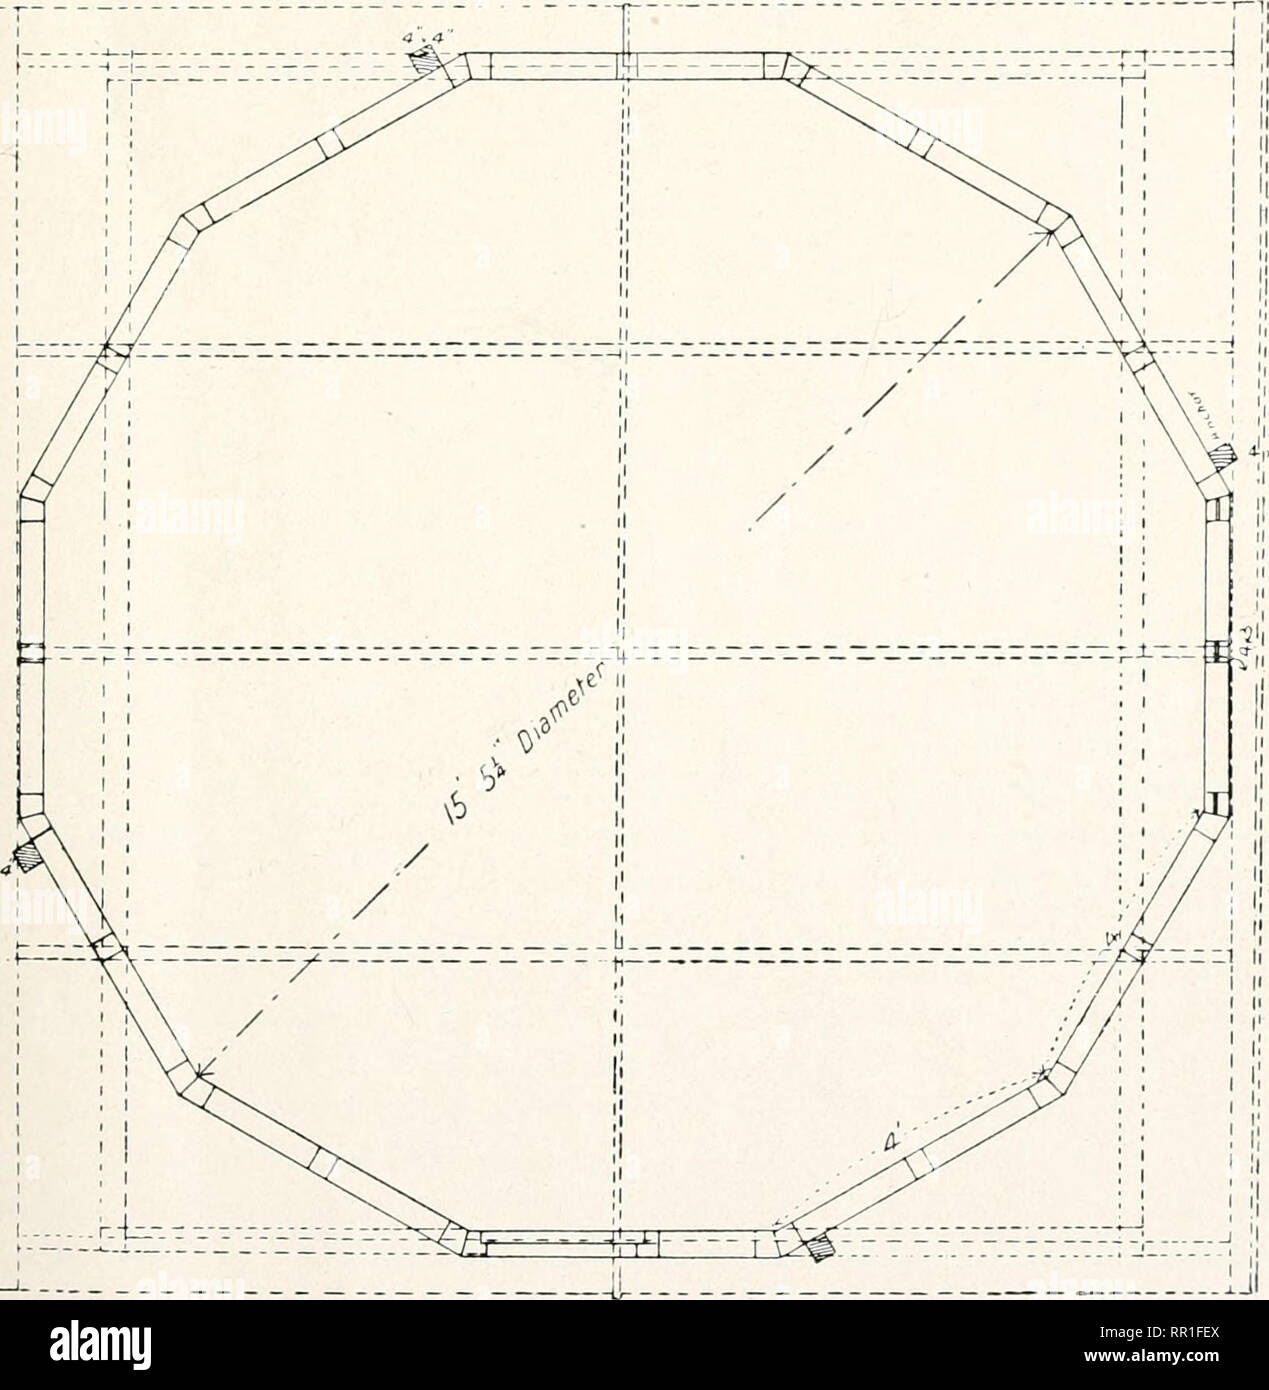 hight resolution of agriculture agriculture australia new south wales jan 2 190s a ricul tiral gazette of n s w 41 tlie method of attaching these rods is sliown in